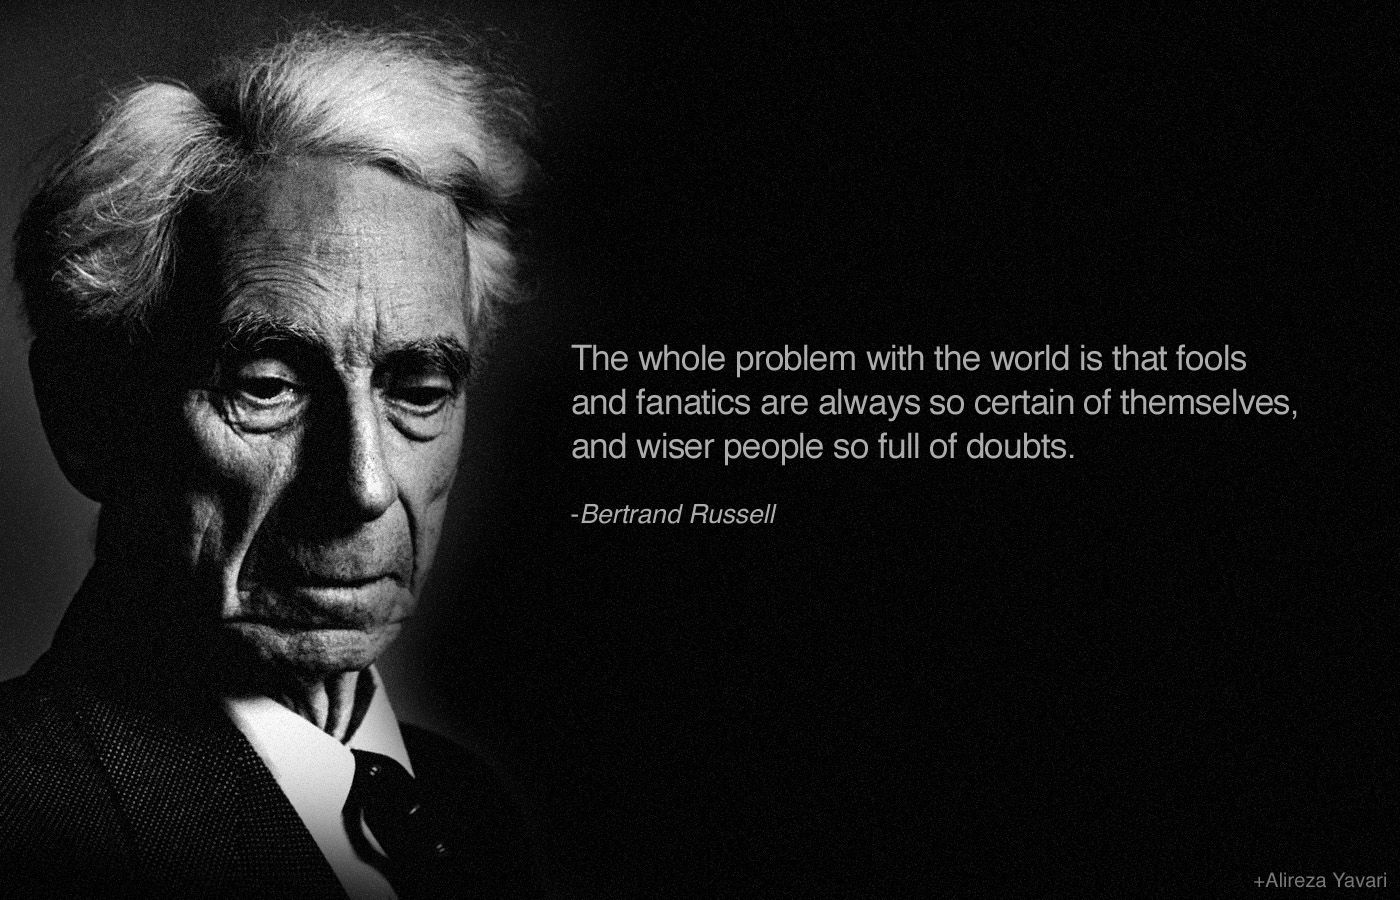 Wisdom Successful People Quotes Quotes By Famous People Inspirational Celebrity Quotes